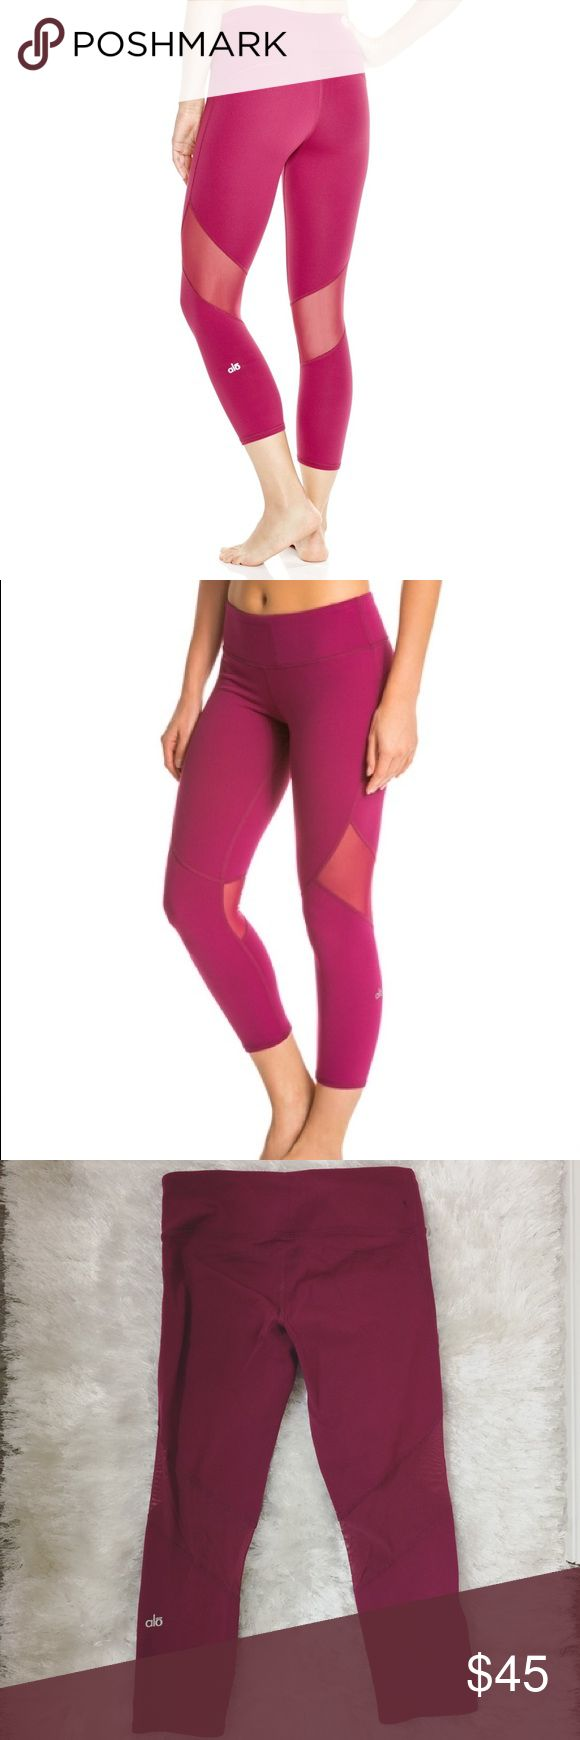 LIKE NEW Alo Yoga Mesh Fuchsia Pink Capri Legging Barely used Workout gym leggings Capri. Alo Yoga Go Capri with Mesh accents on the back and sides. Perfect for ventilating your legs. Like most Alo Yoga pants, it features a small pocket on the front top hem of the pants for keys/cash. Super stretchy and GREAT material. It's not thin or cheap. There's a small faded spot on the pant (like 1cm) . It's on the last photo bottom left. It's hardly noticeable. ALO Yoga Pants Leggings